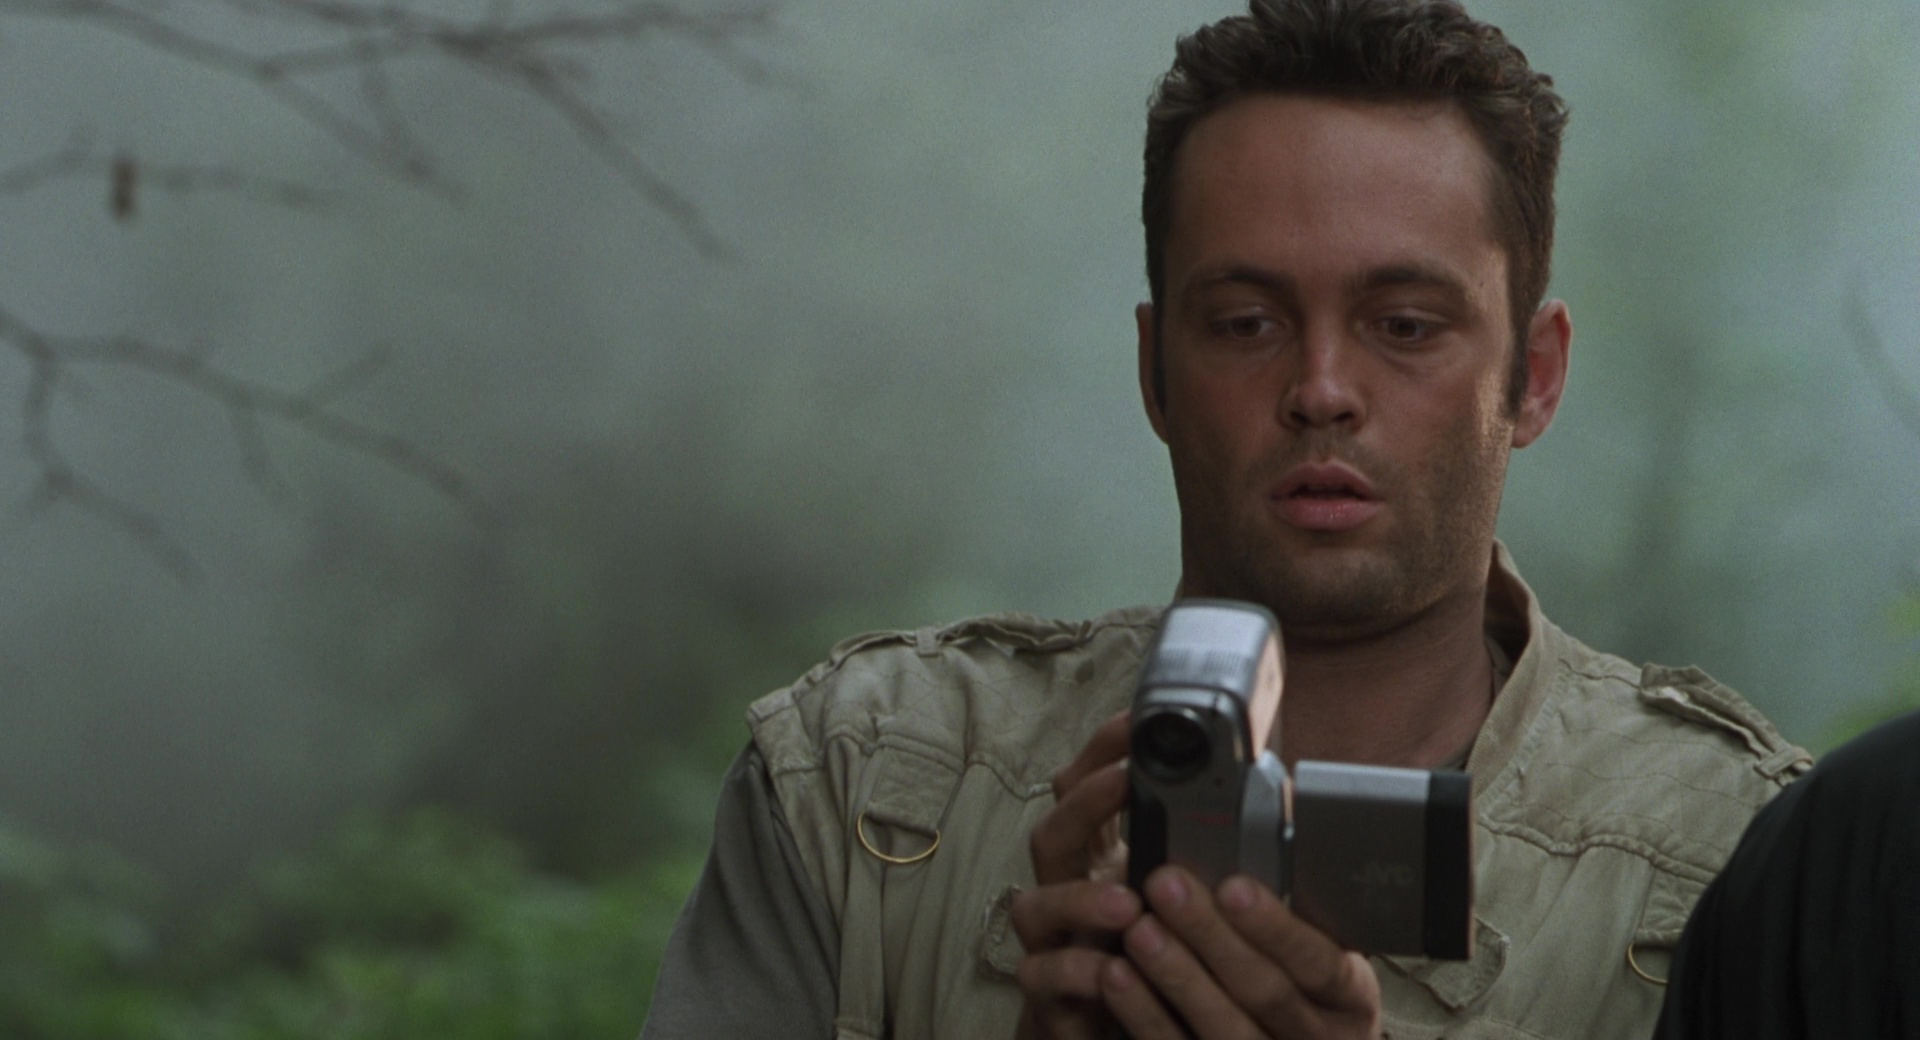 JVC Video Camera Used by Vince Vaughn in The Lost World